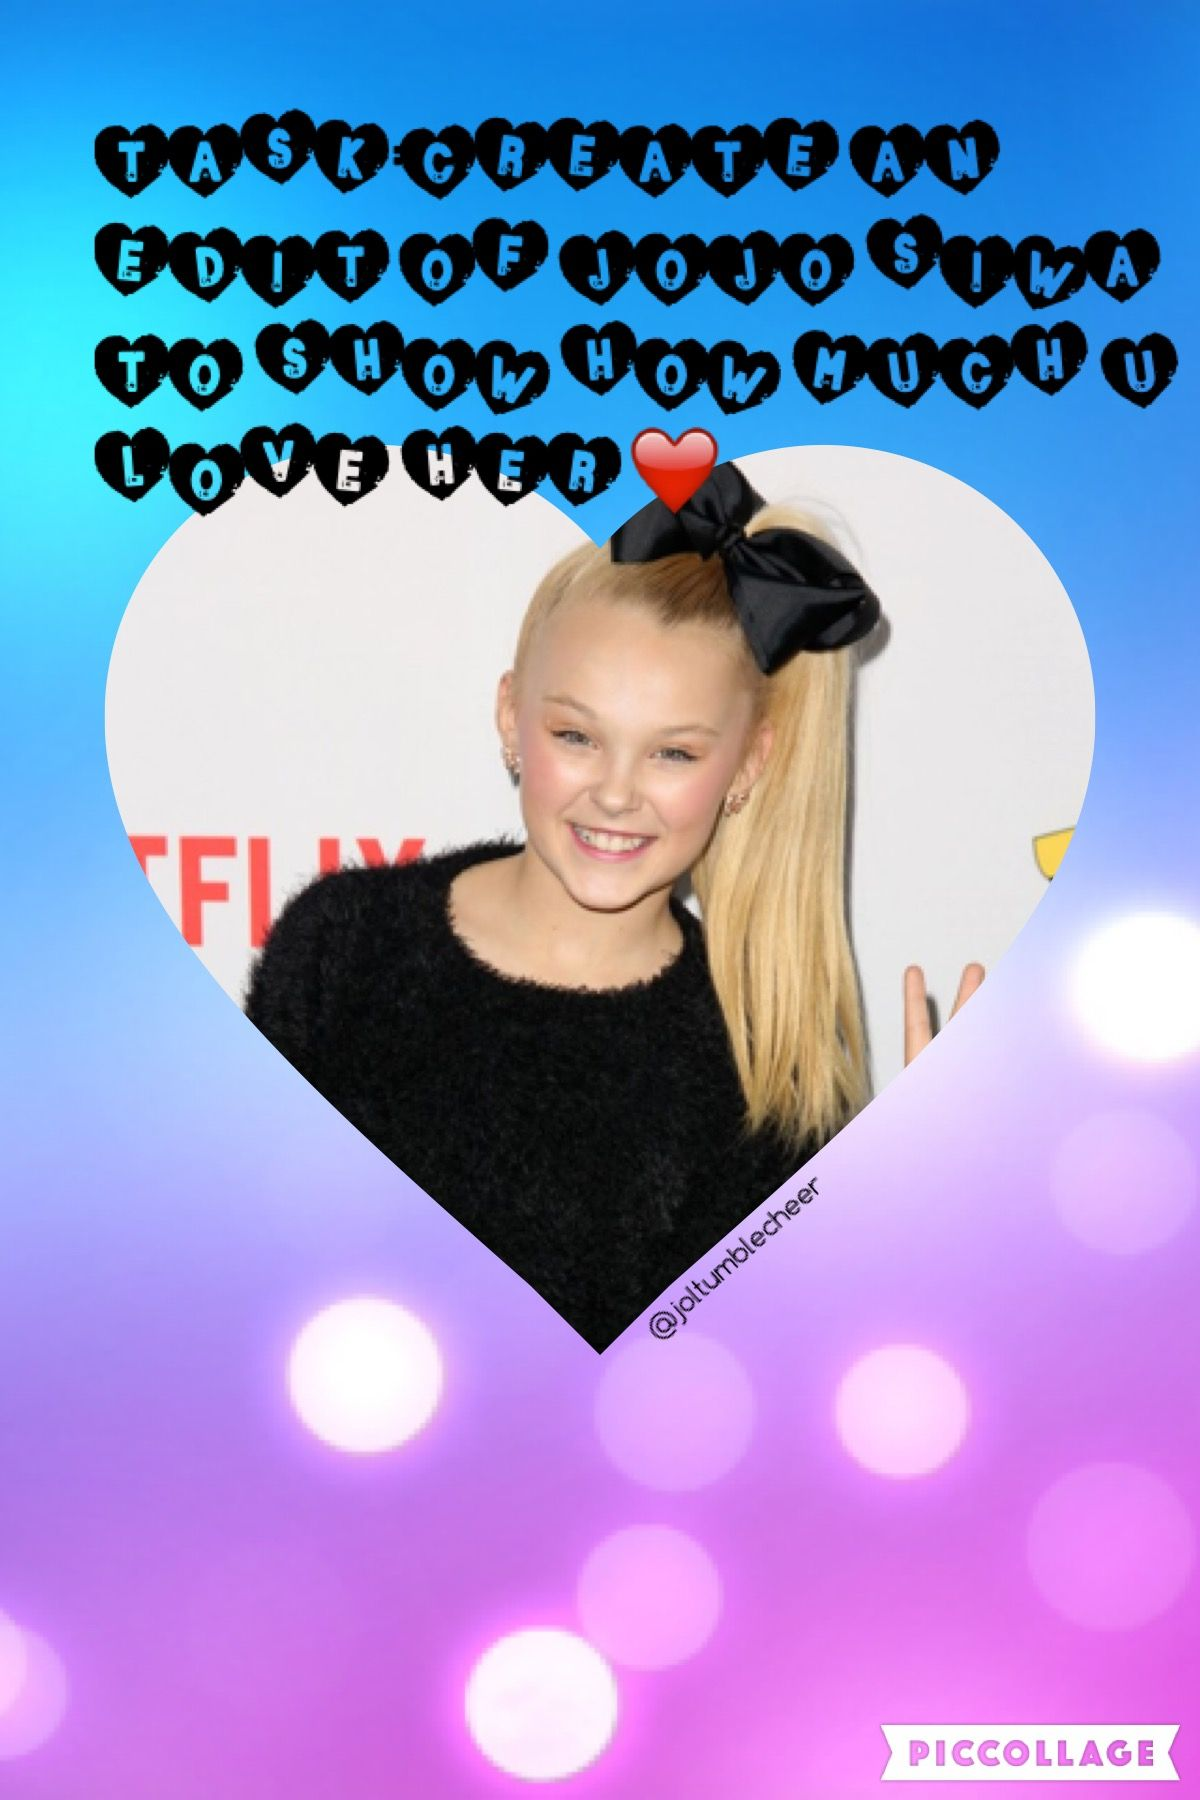 make a dance moms edit of jojo siwa to show how much you love her and tag me in it good luck!!